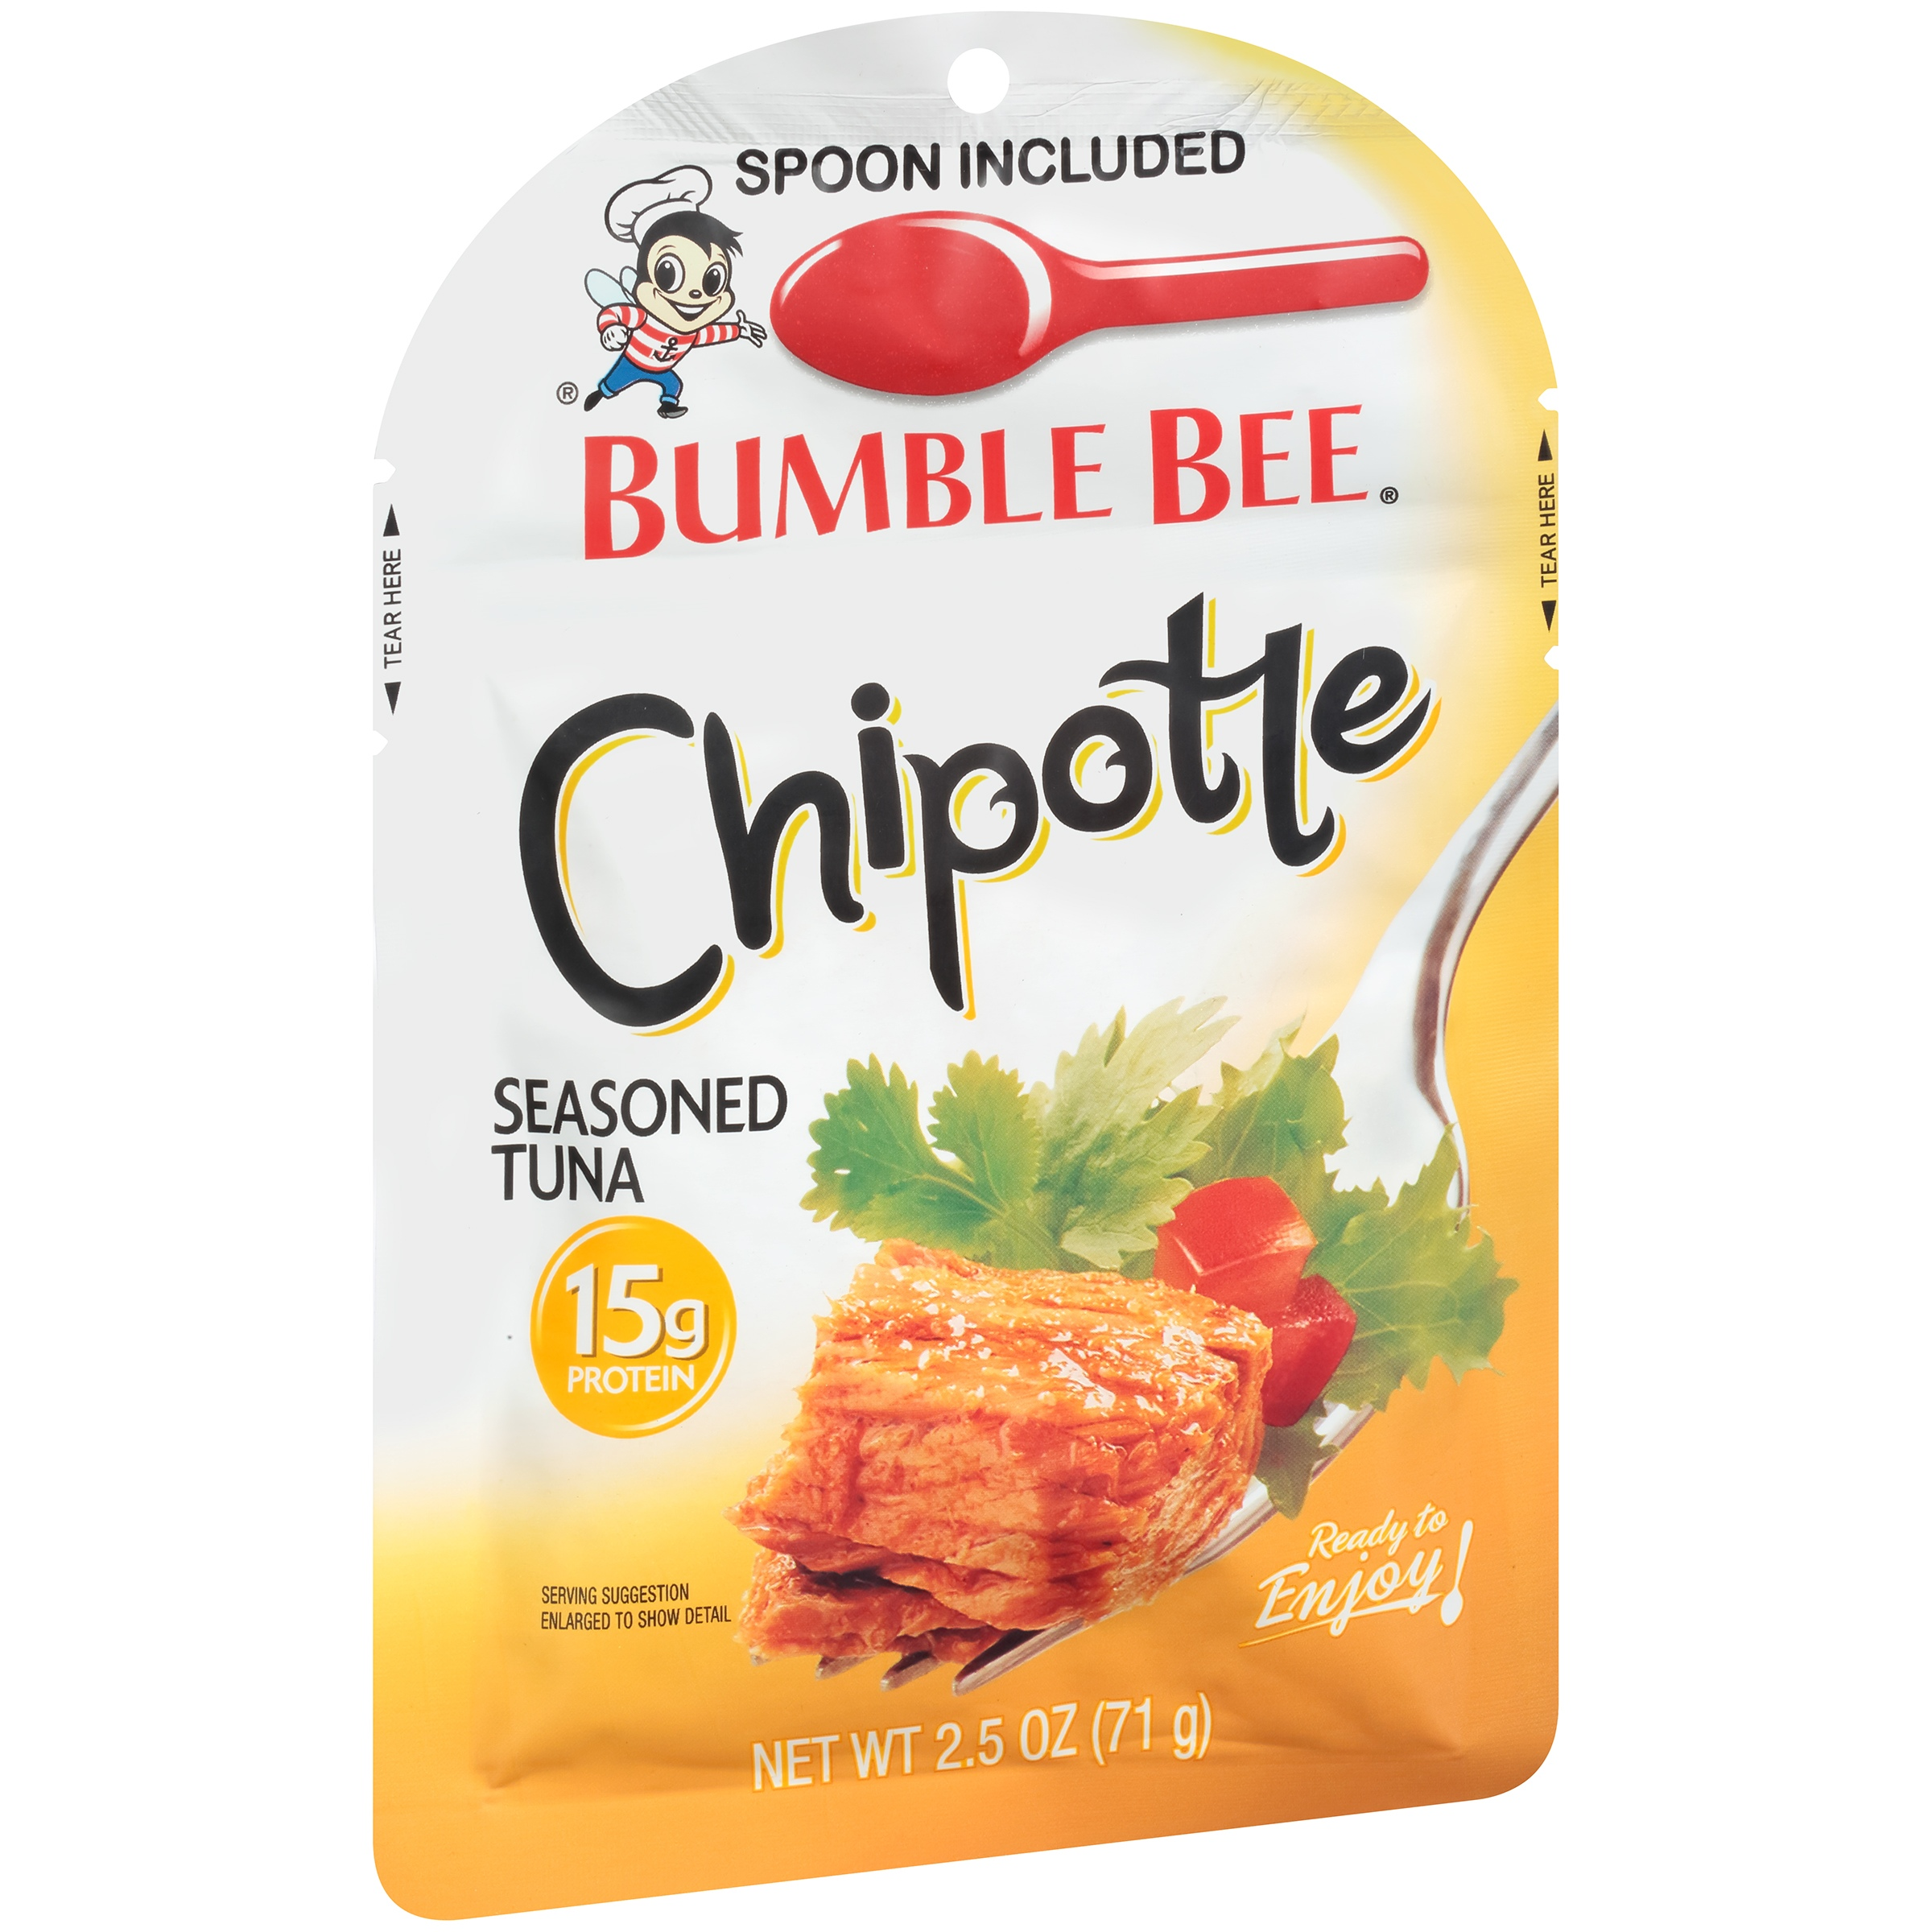 Bumble Bee Chipotle Seasoned Tuna Pouch 2.5oz by Bumble Bee Seafoods